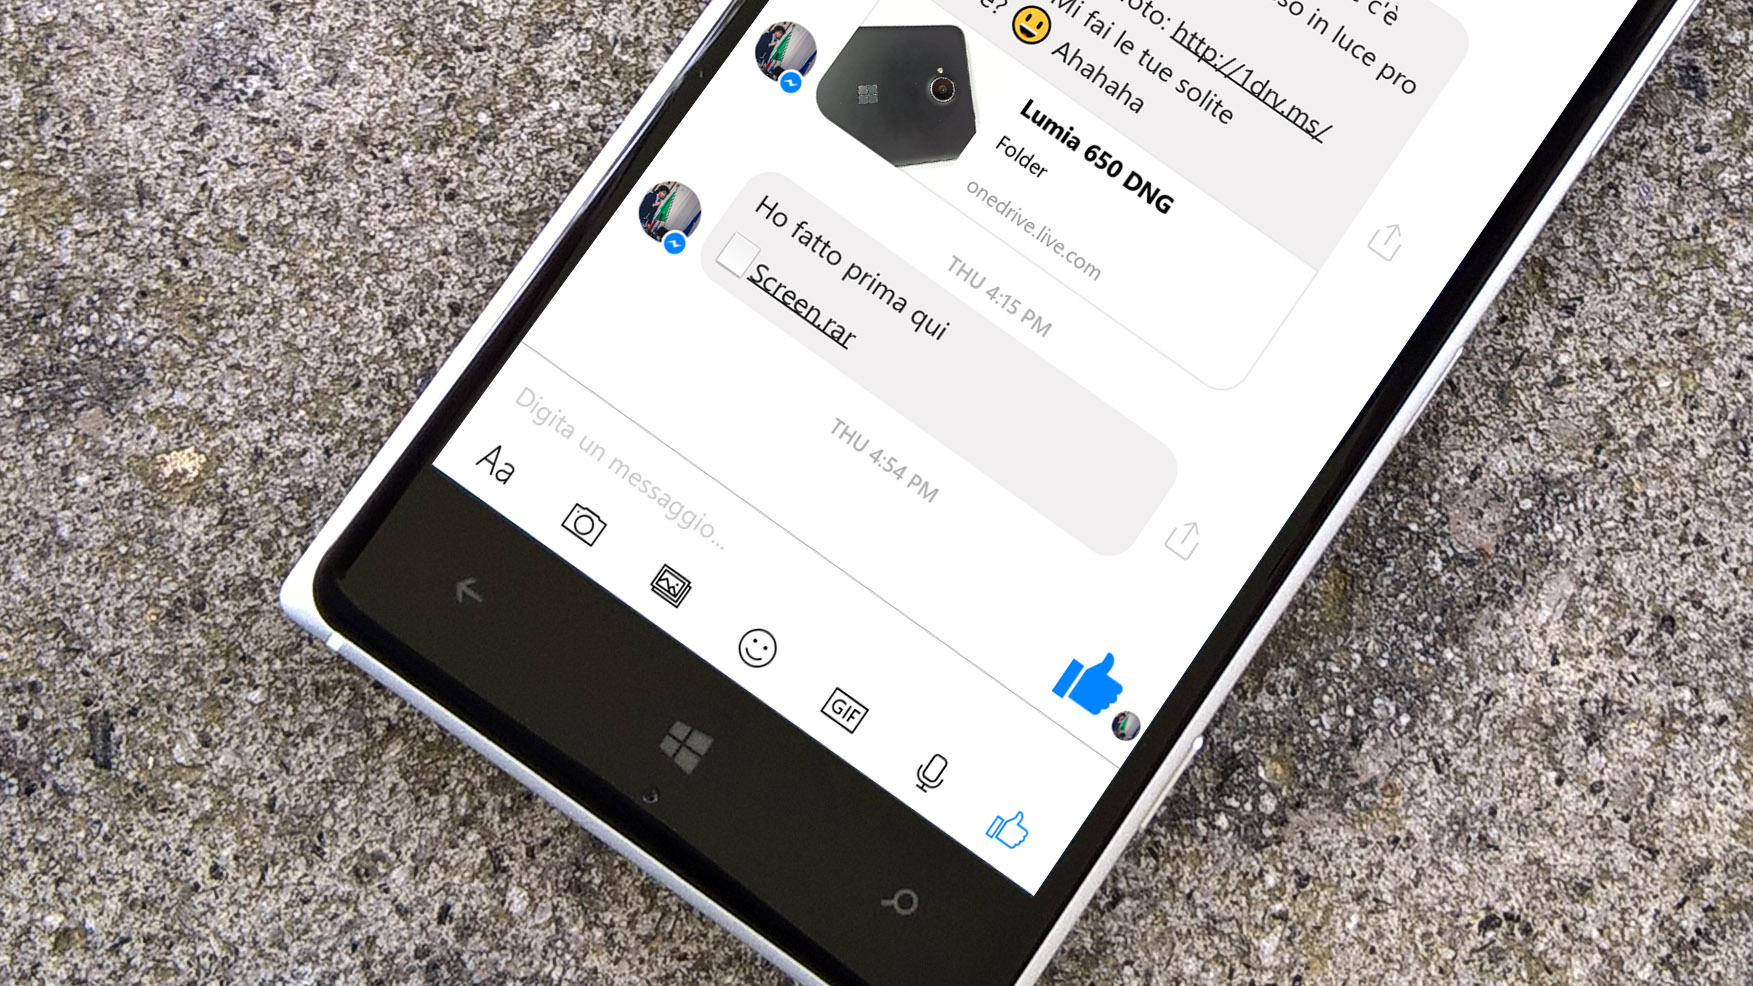 Facebook Messenger Windows 10 Mobile